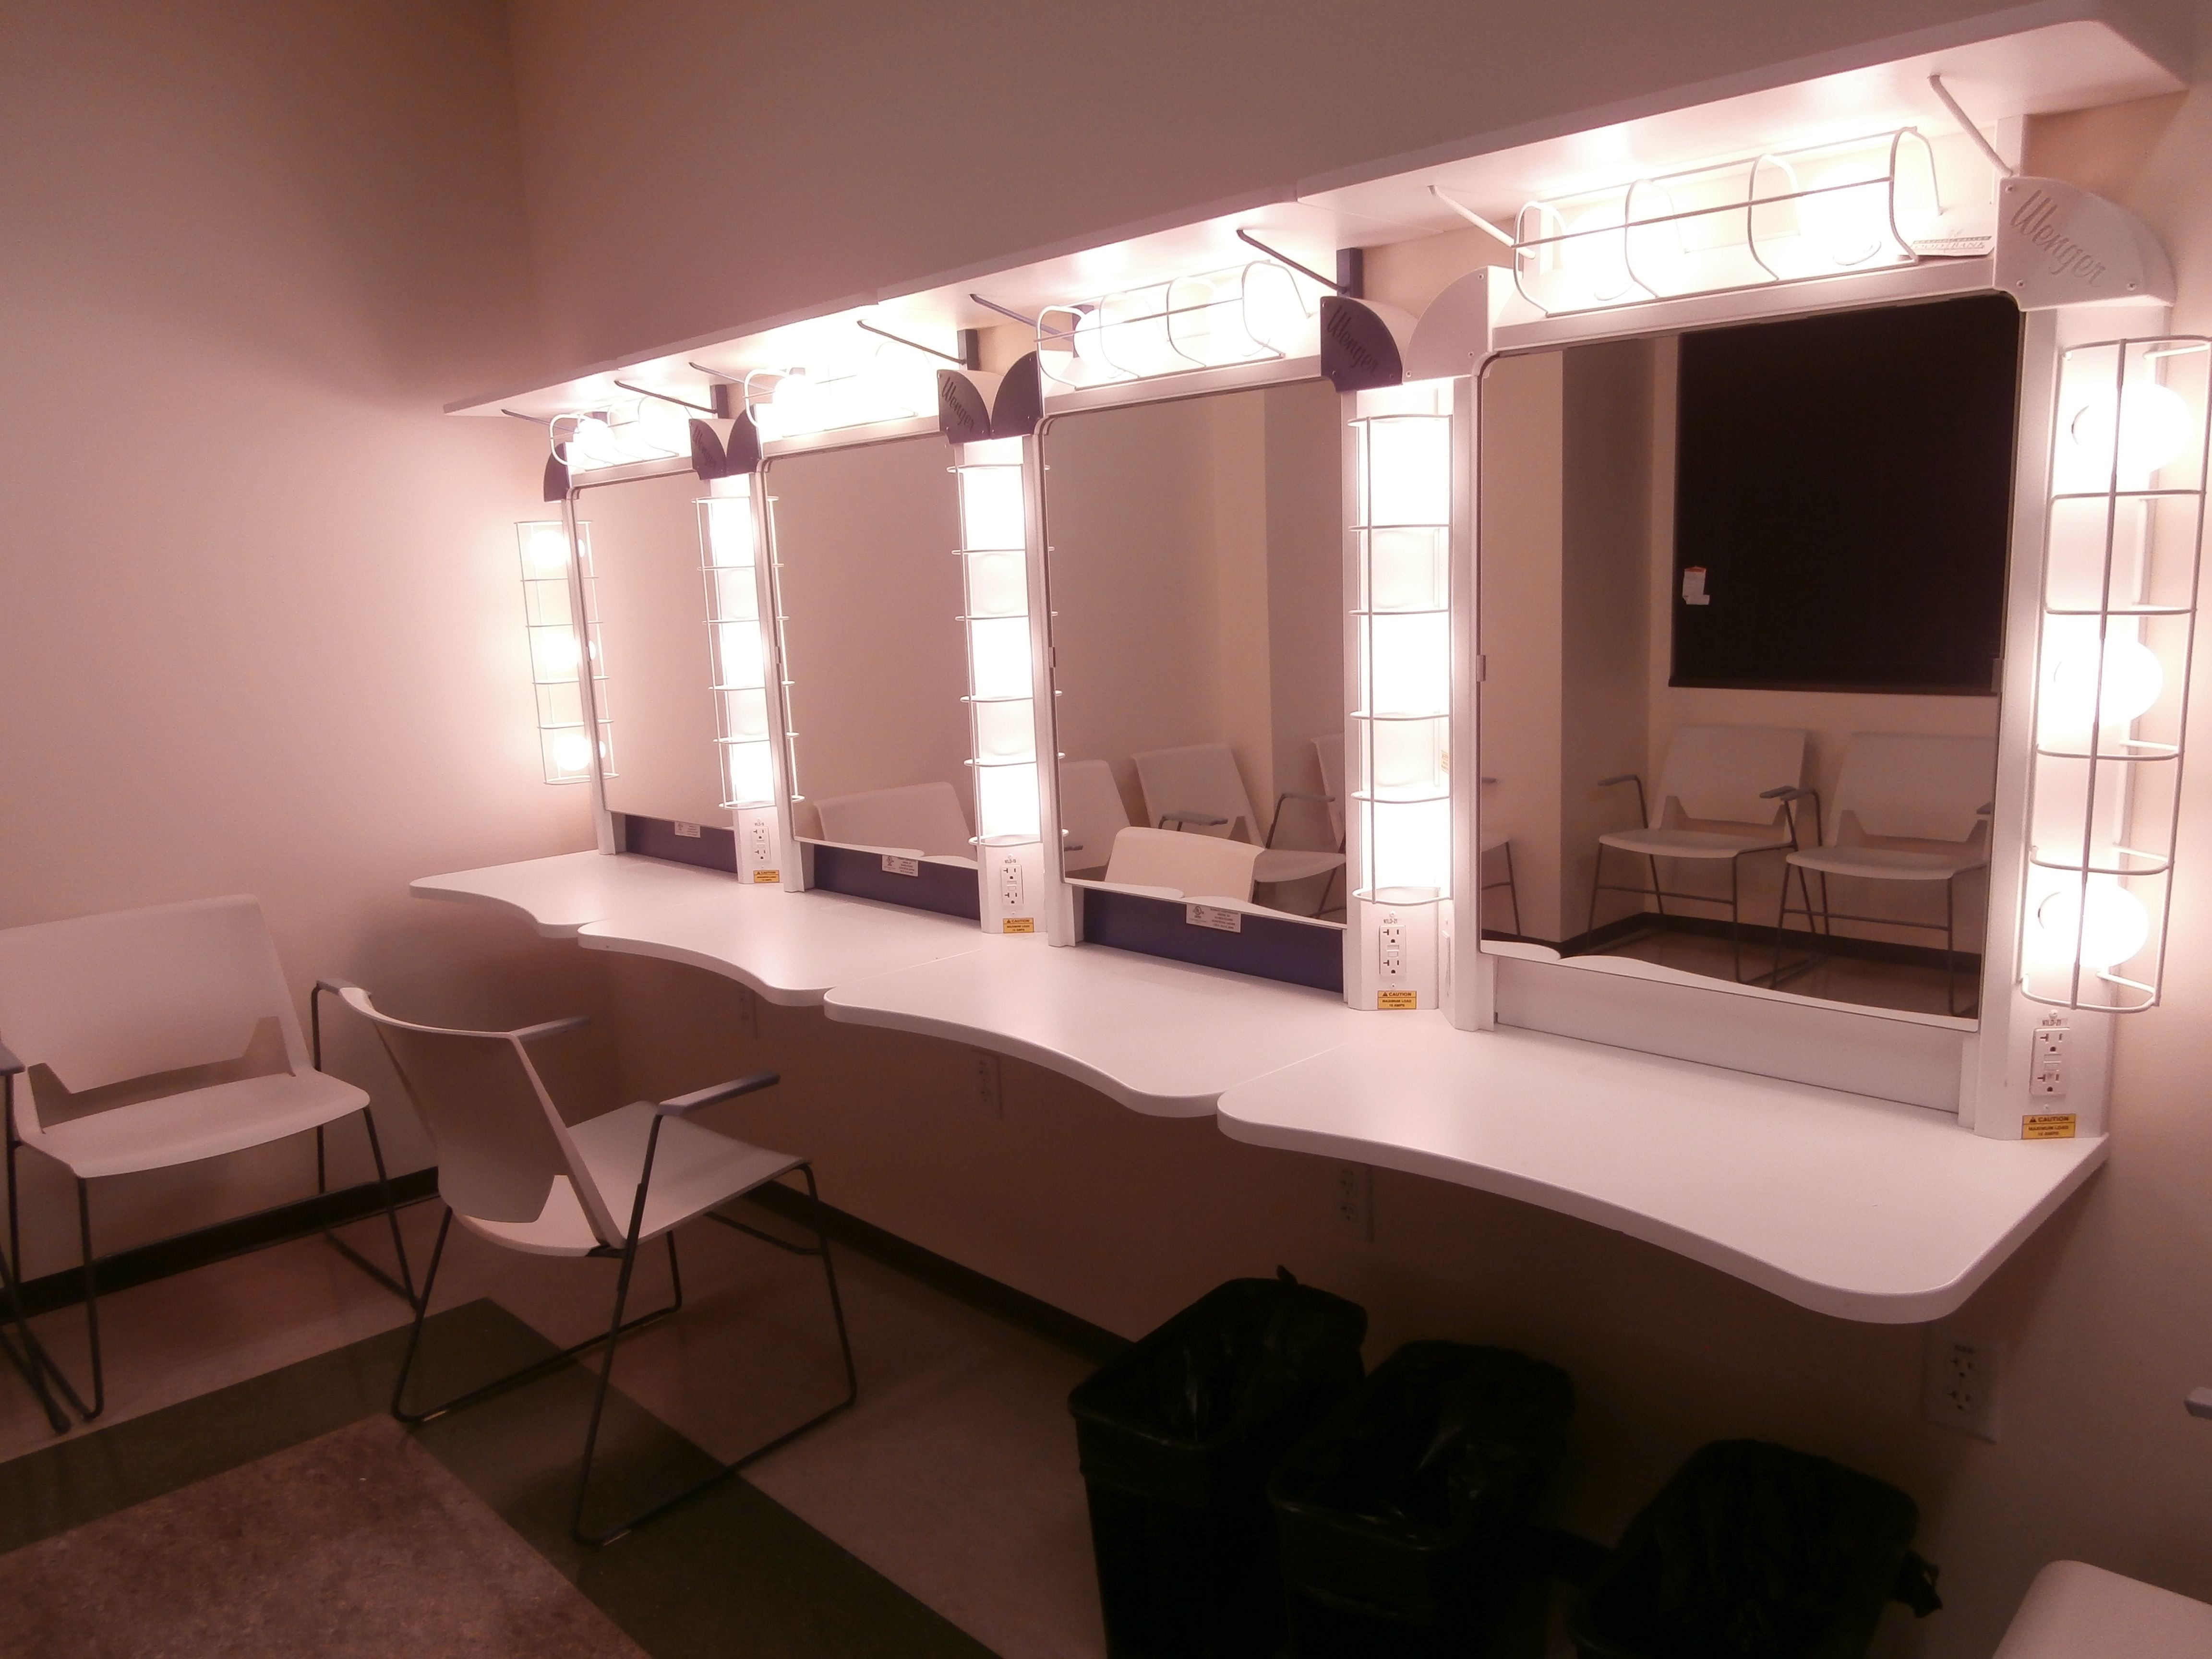 Backstage Dressing Room Mirror - Viewing Gallery & Backstage Dressing Room Mirror - Viewing Gallery | MK BOX ... azcodes.com